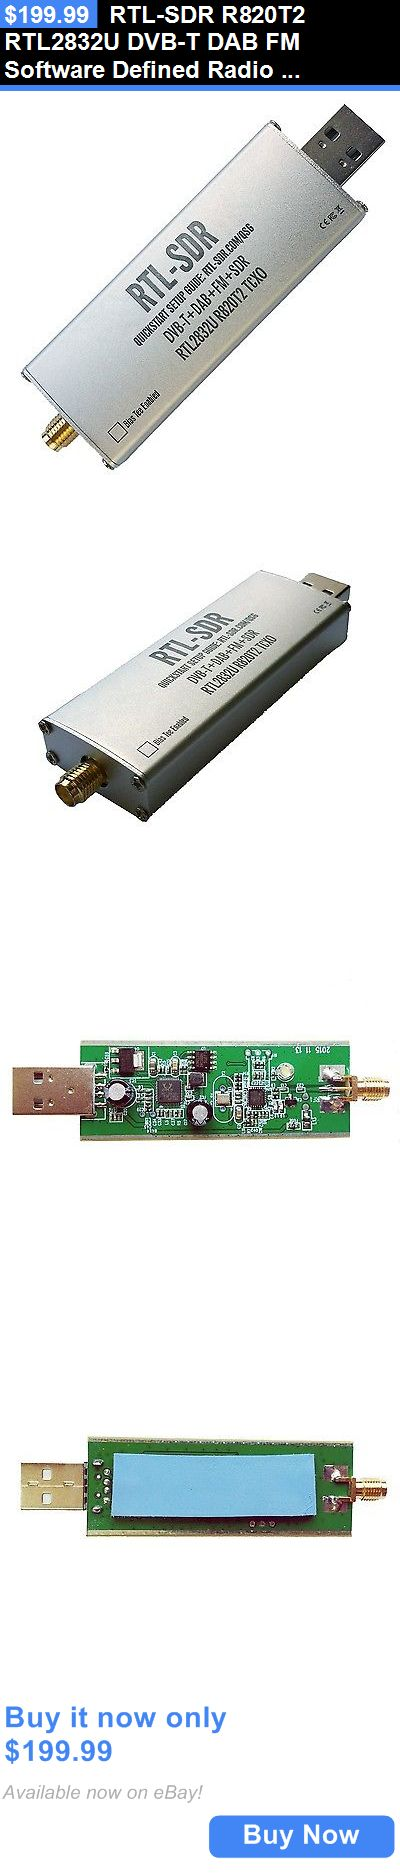 Ham Radio Receivers: Rtl-Sdr R820t2 Rtl2832u Dvb-T Dab Fm Software Defined Radio Scanner Usb Dongle BUY IT NOW ONLY: $199.99